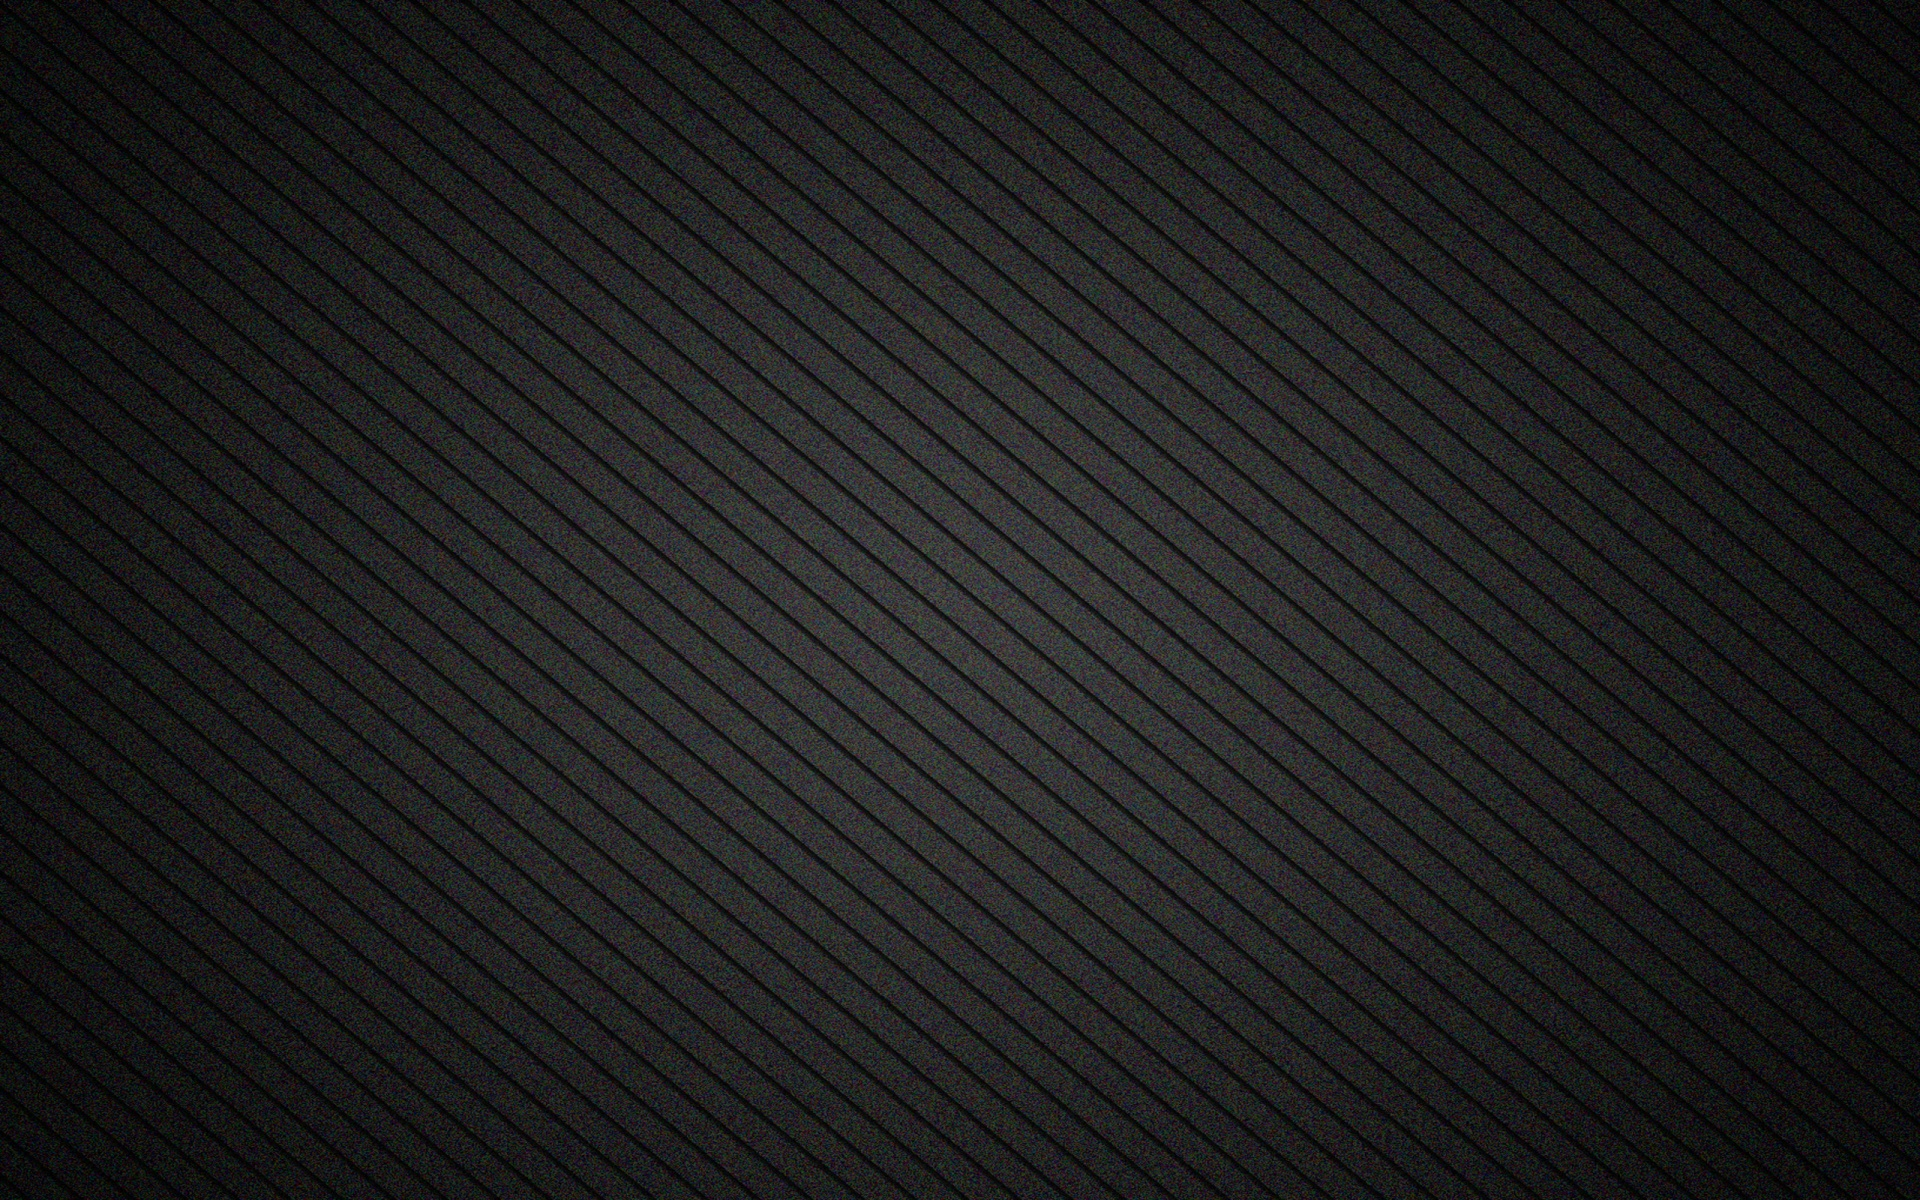 30 hd black wallpapers for Dark pattern background